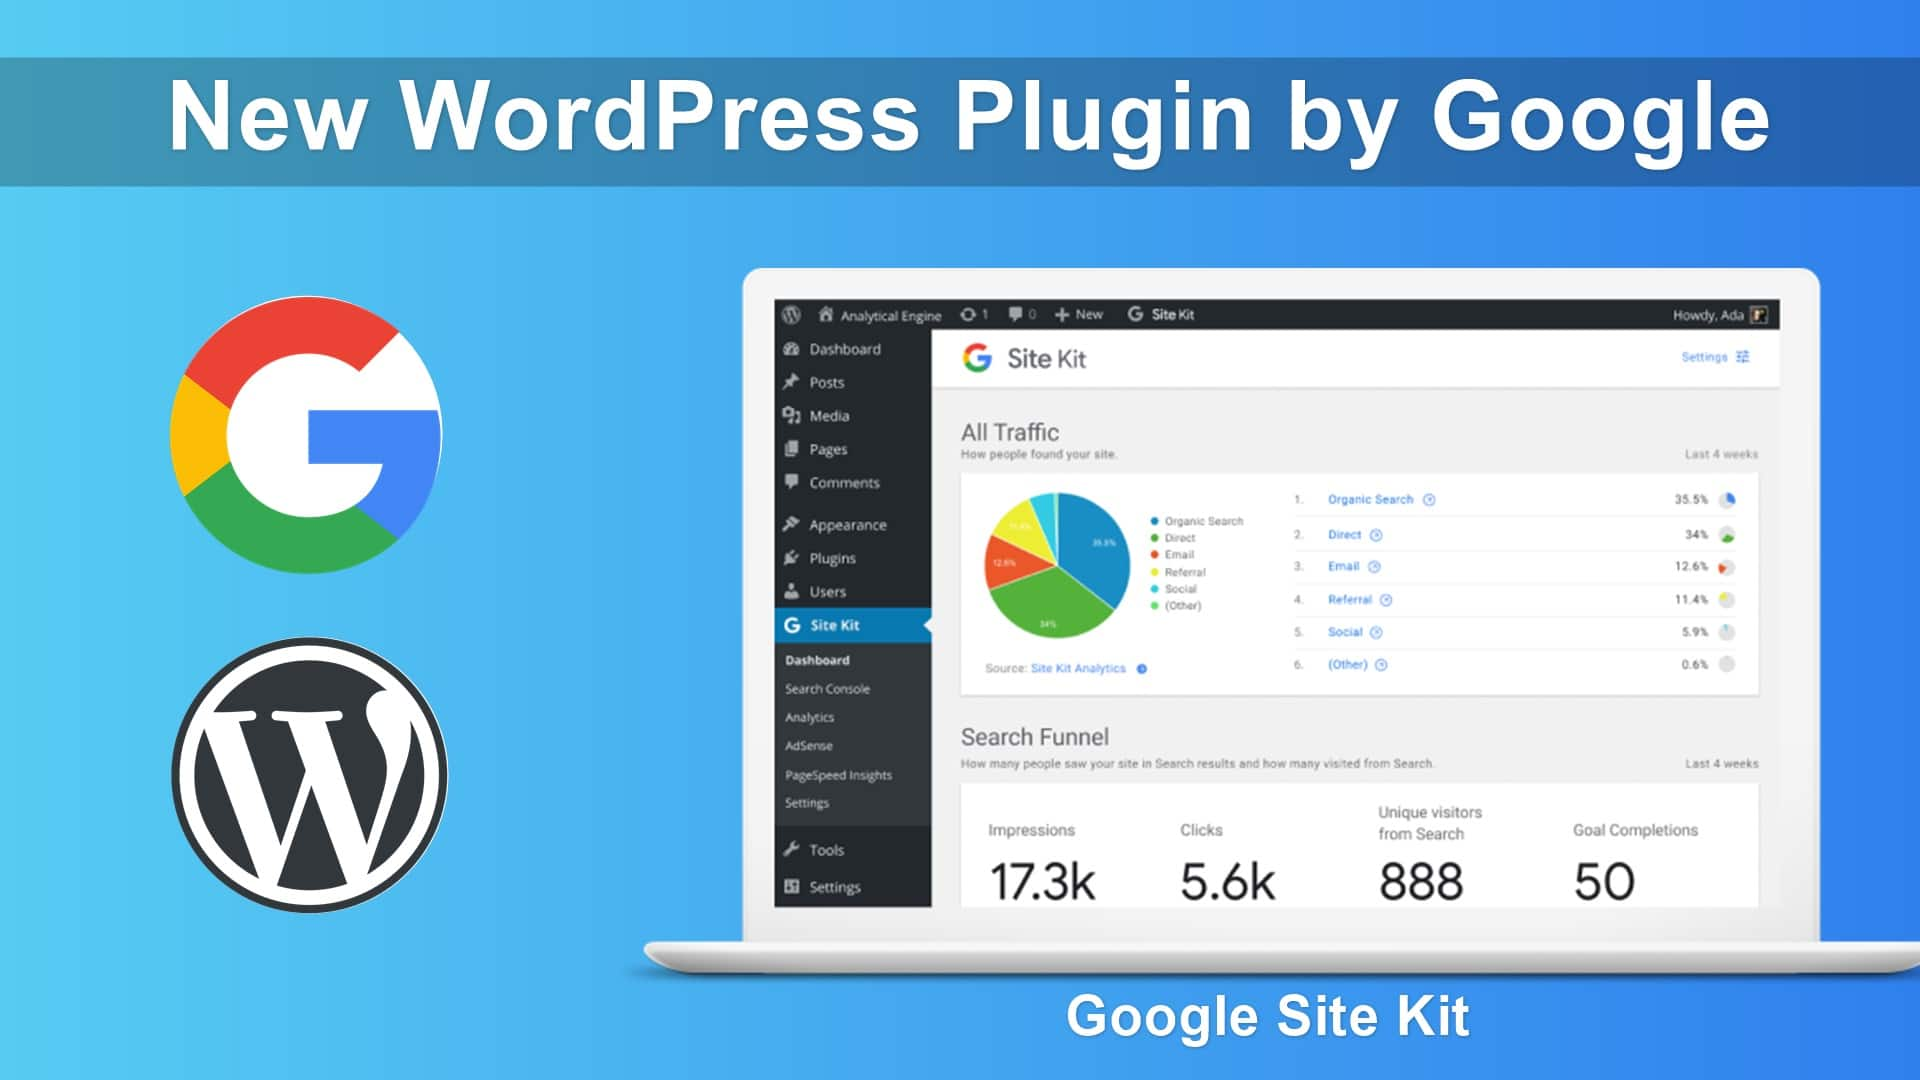 site kit - Site Kit Google - Site Kit, il plugin per WordPress prodotto da Google